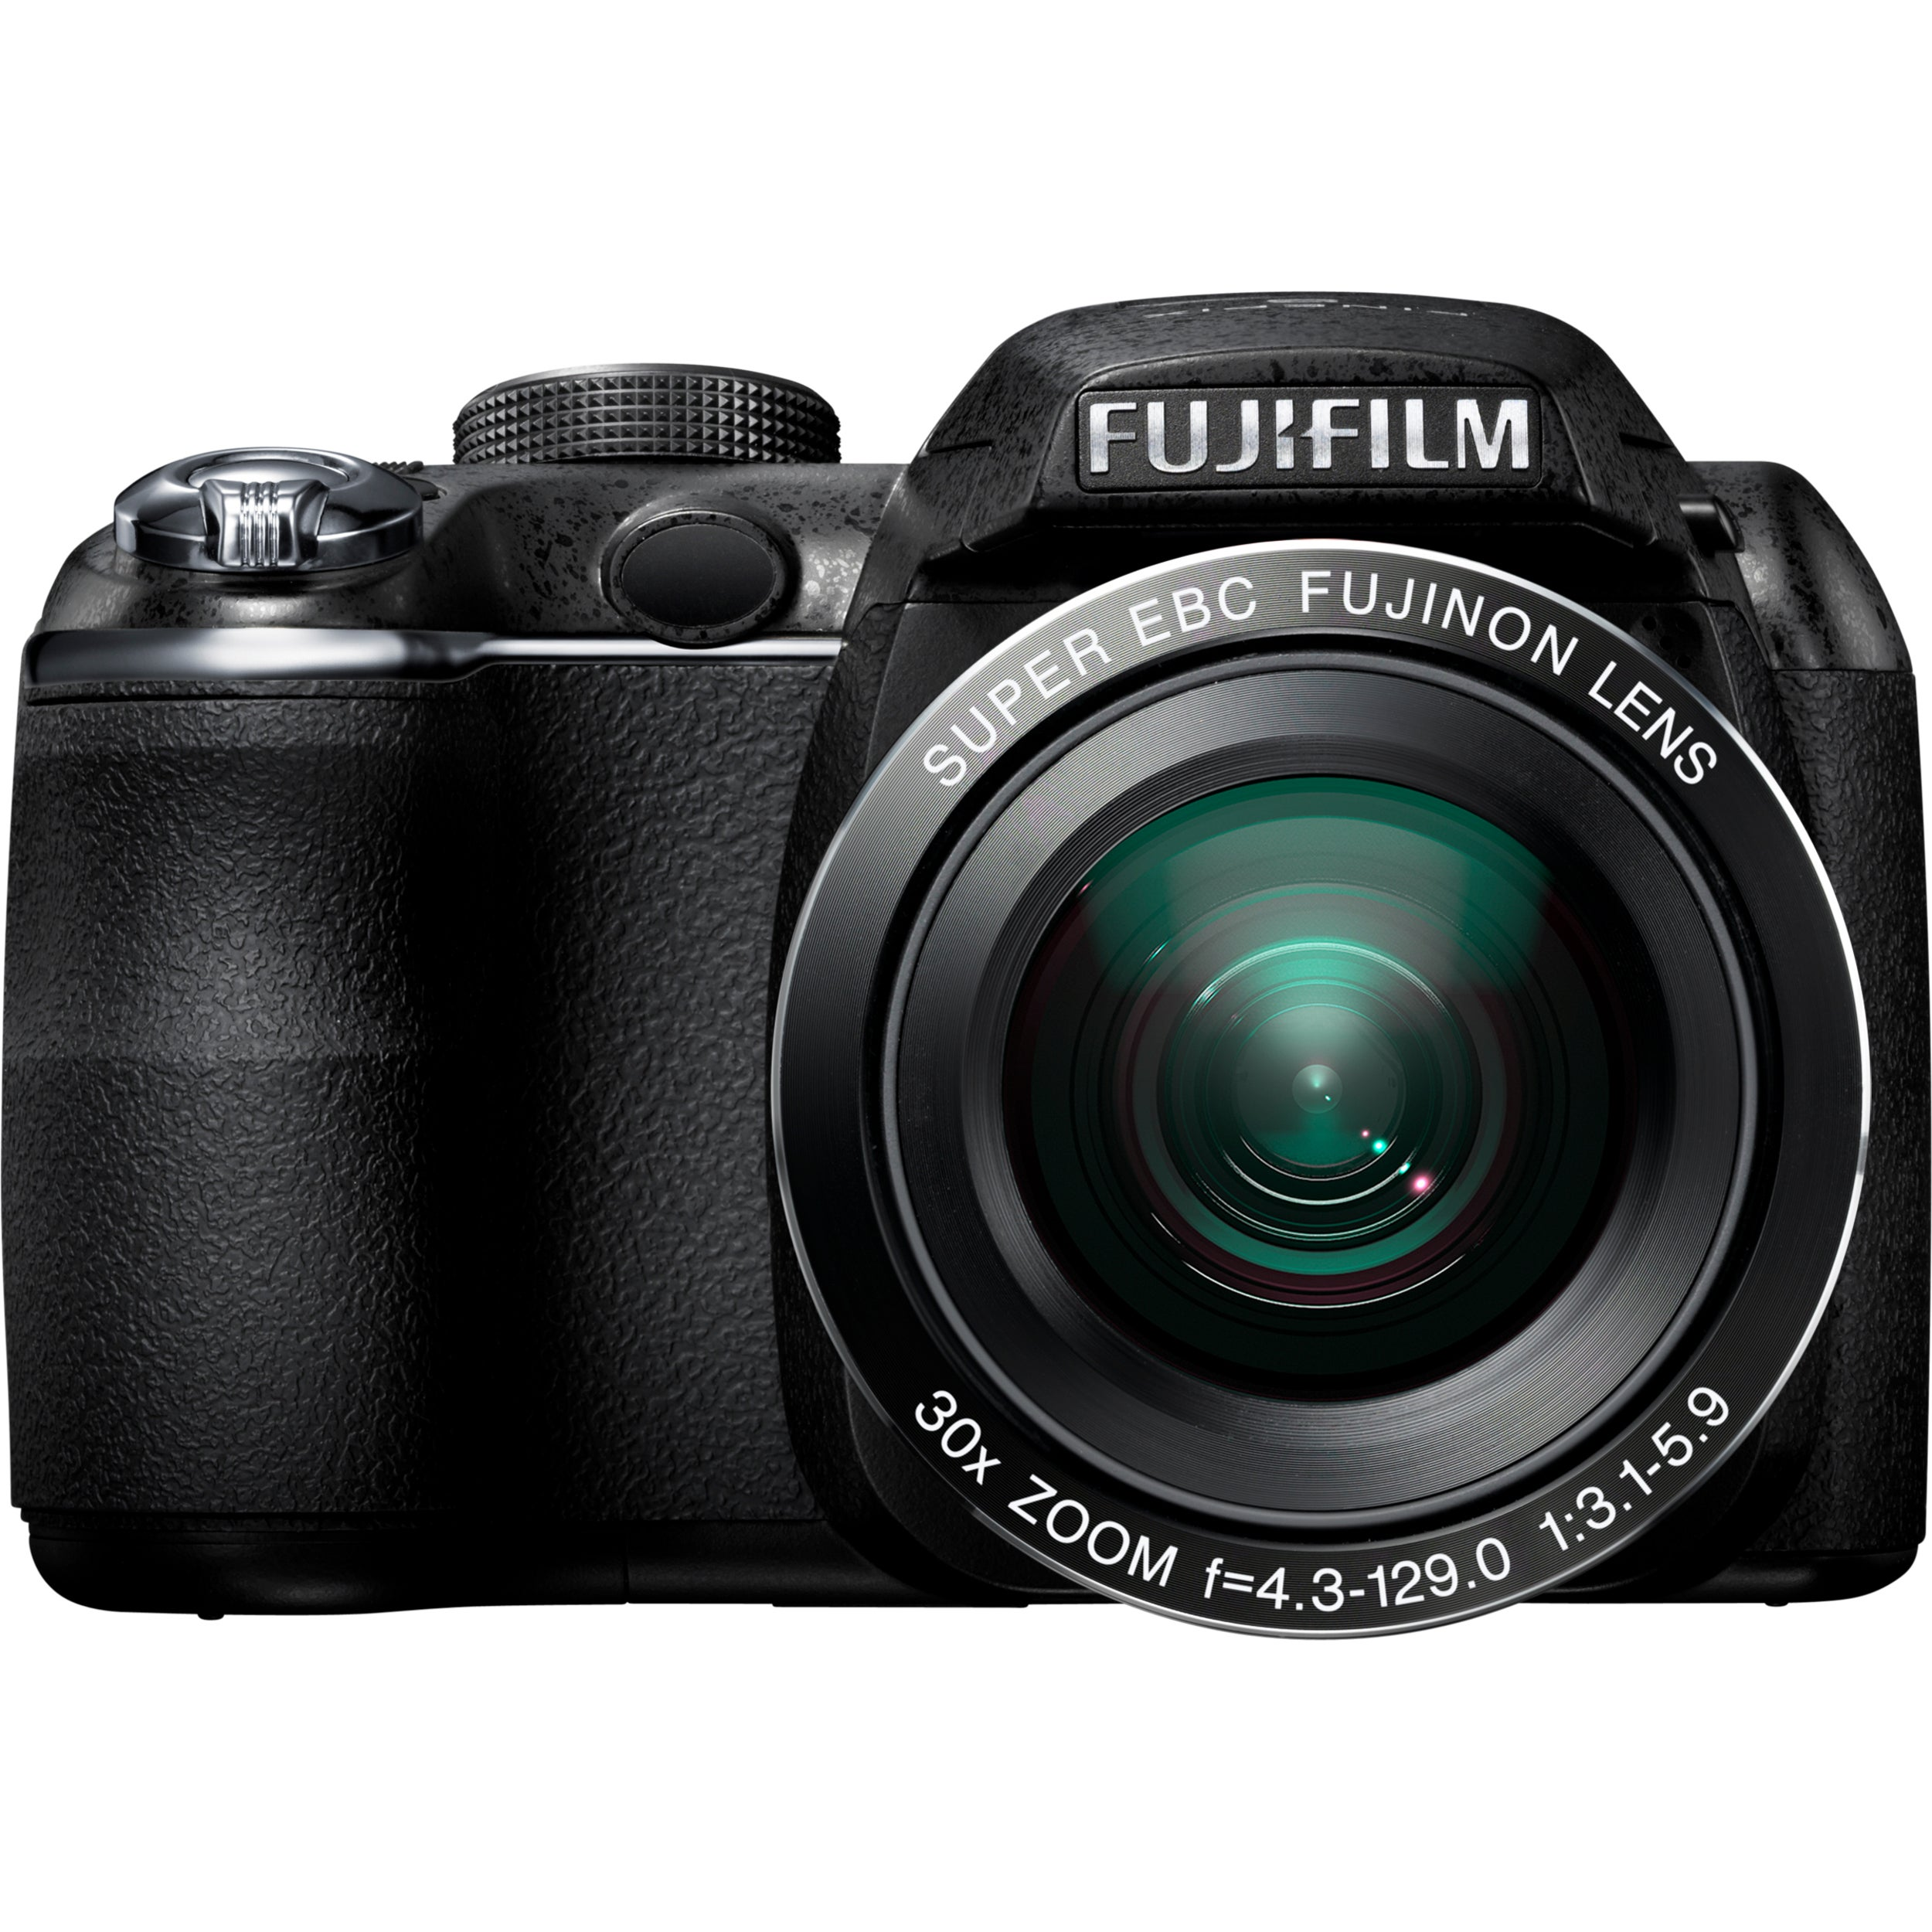 Fujifilm FinePix S4000 14 Megapixel Bridge Camera - Black